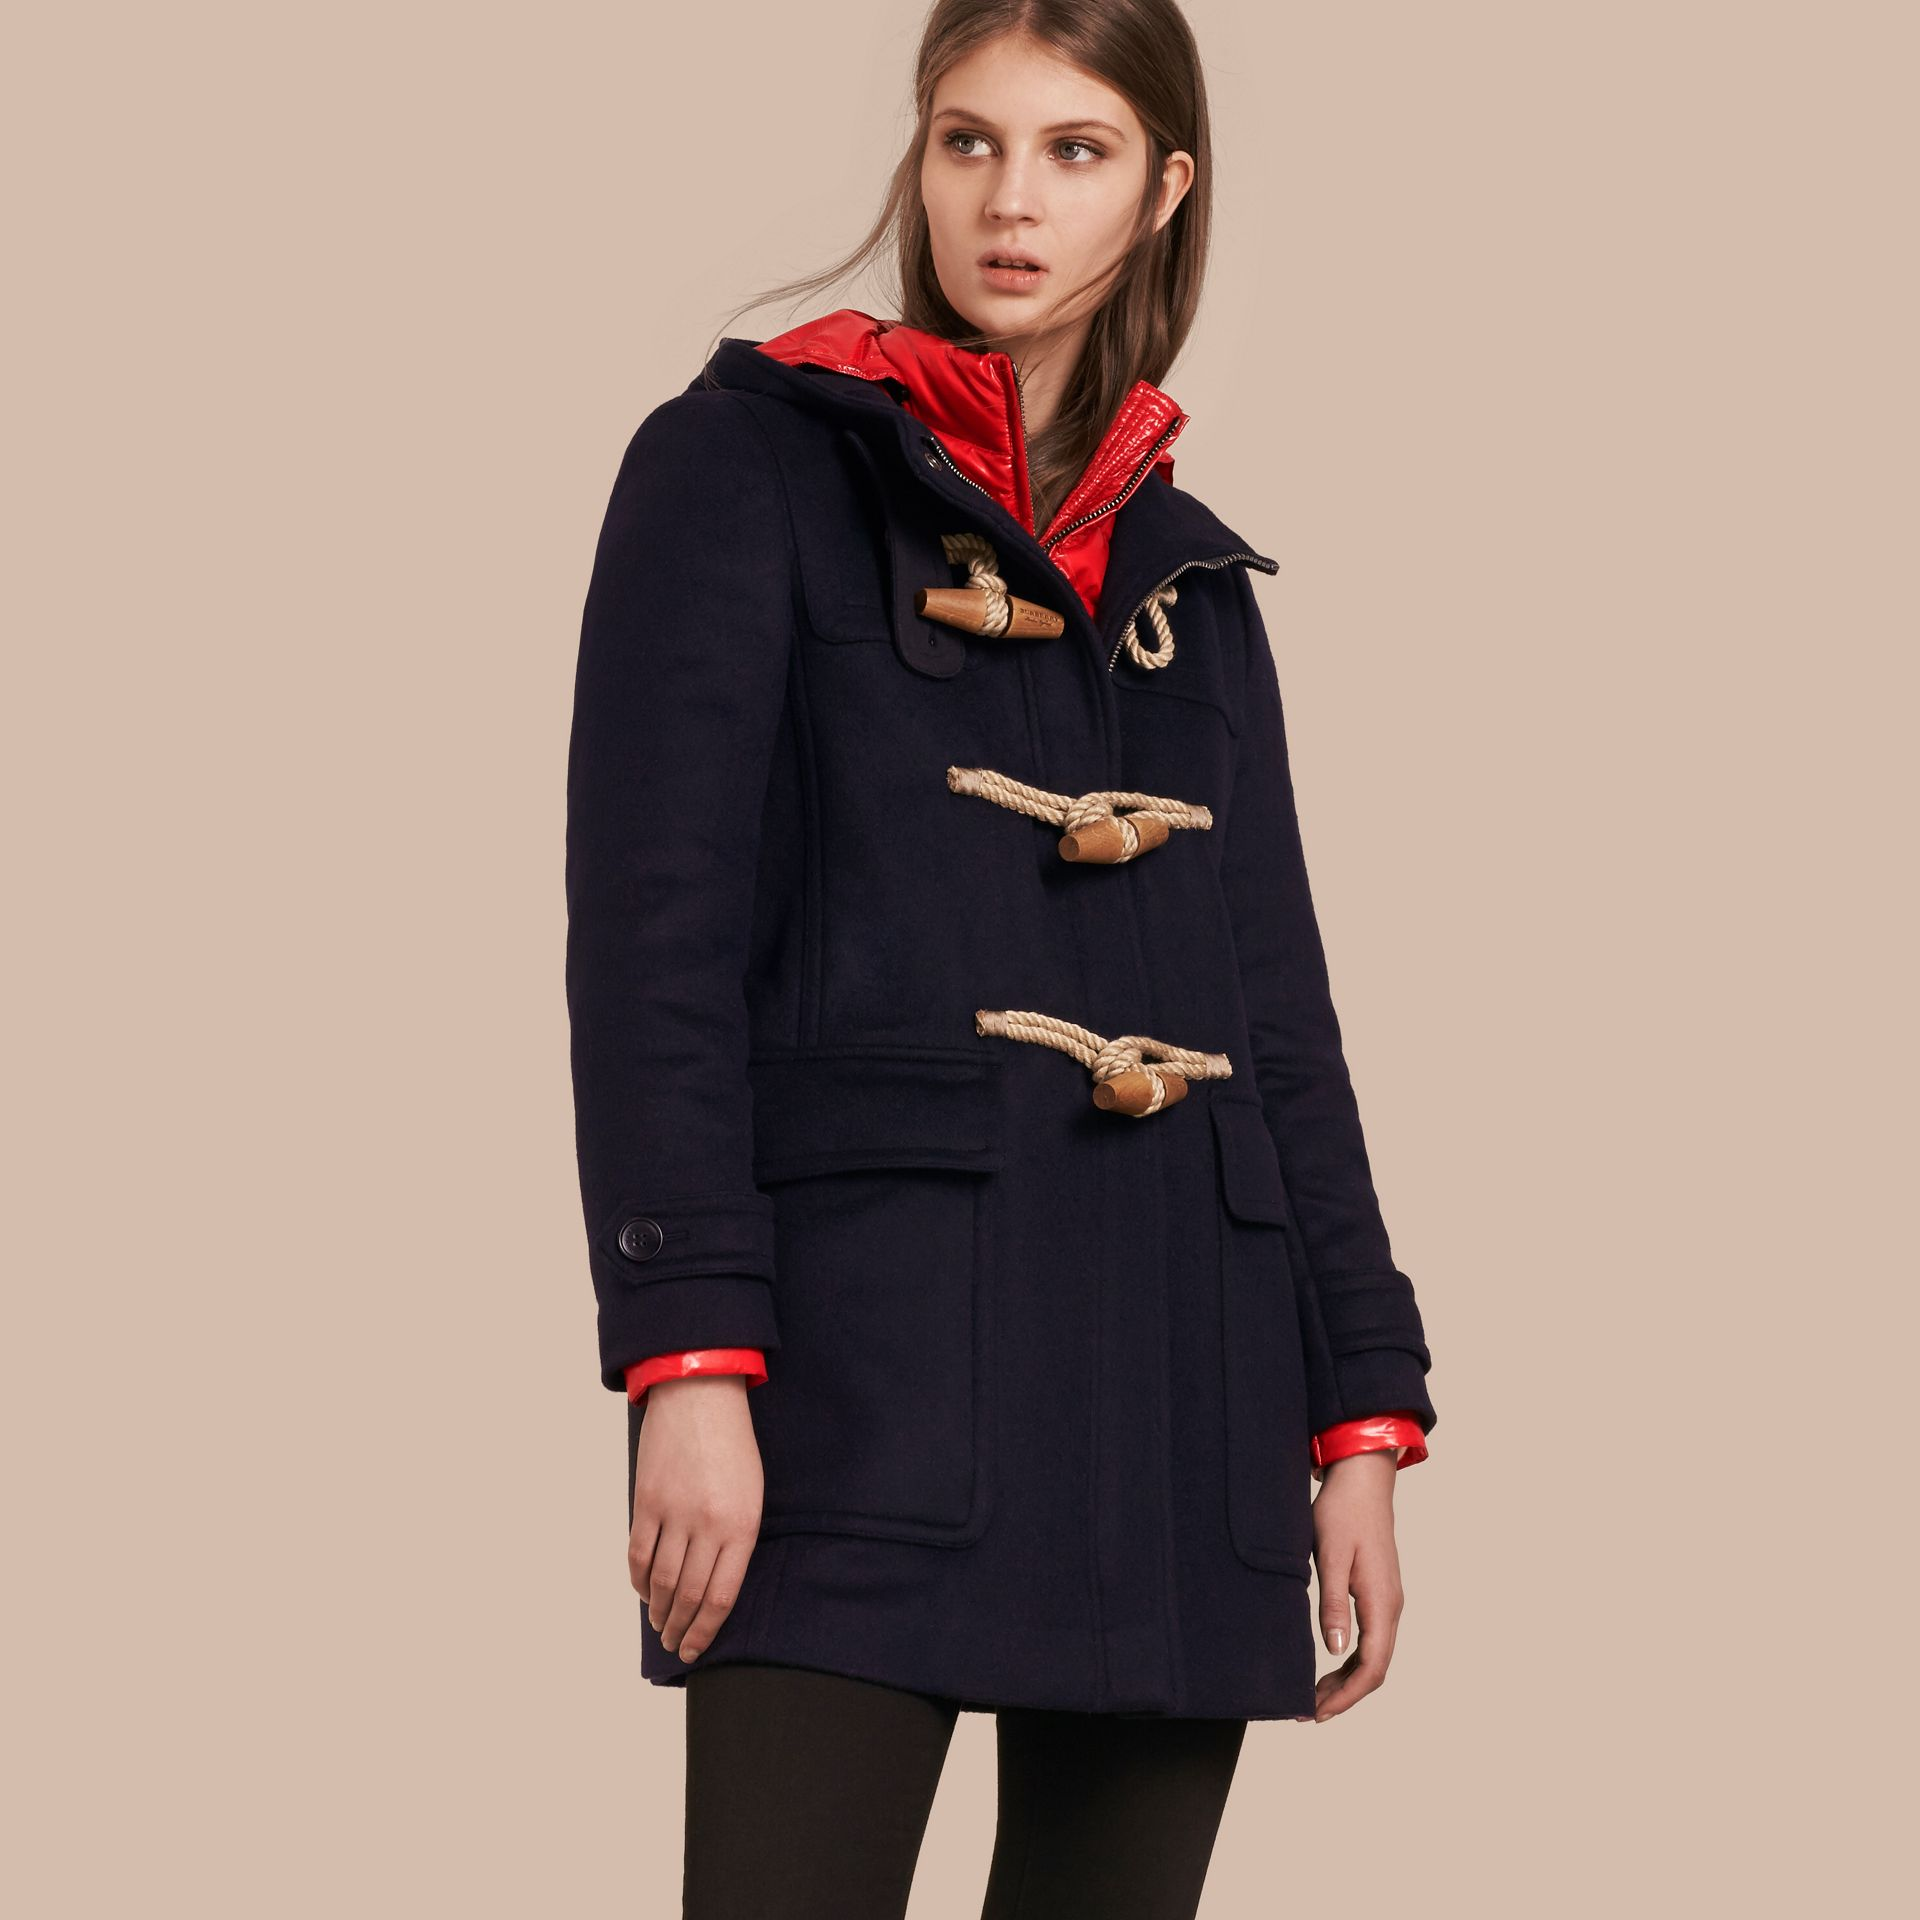 Wool Duffle Coat with Detachable Hooded Down-filled Warmer in Navy Check - gallery image 1